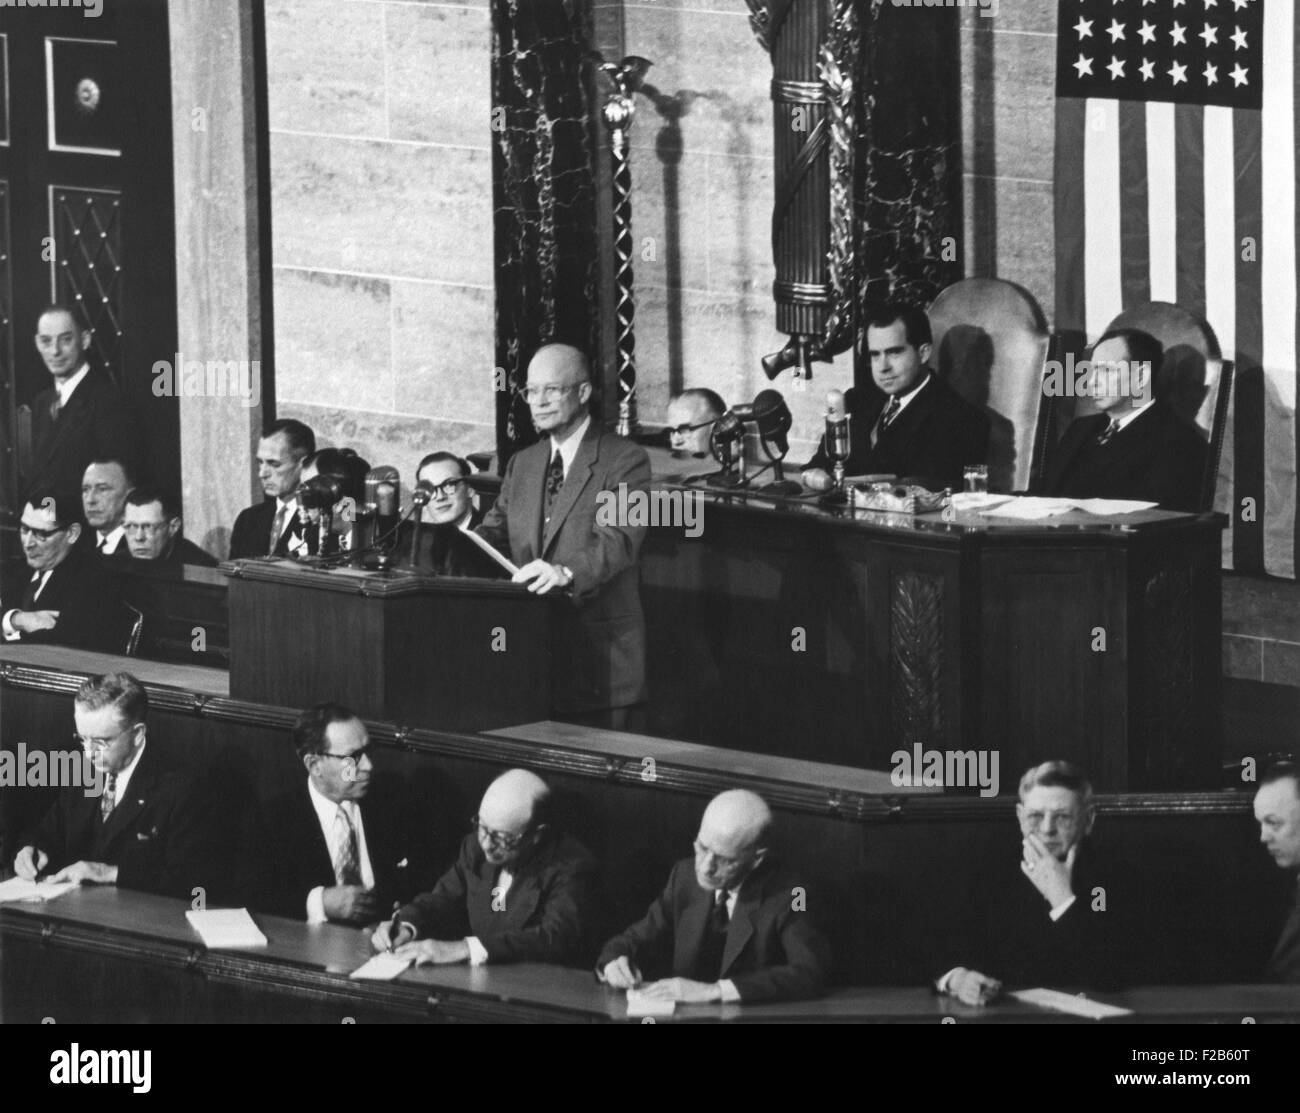 President Dwight Eisenhower delivering his 1954 State of the Union address to Congress. Jan. 7, 1954. VP Nixon and - Stock Image